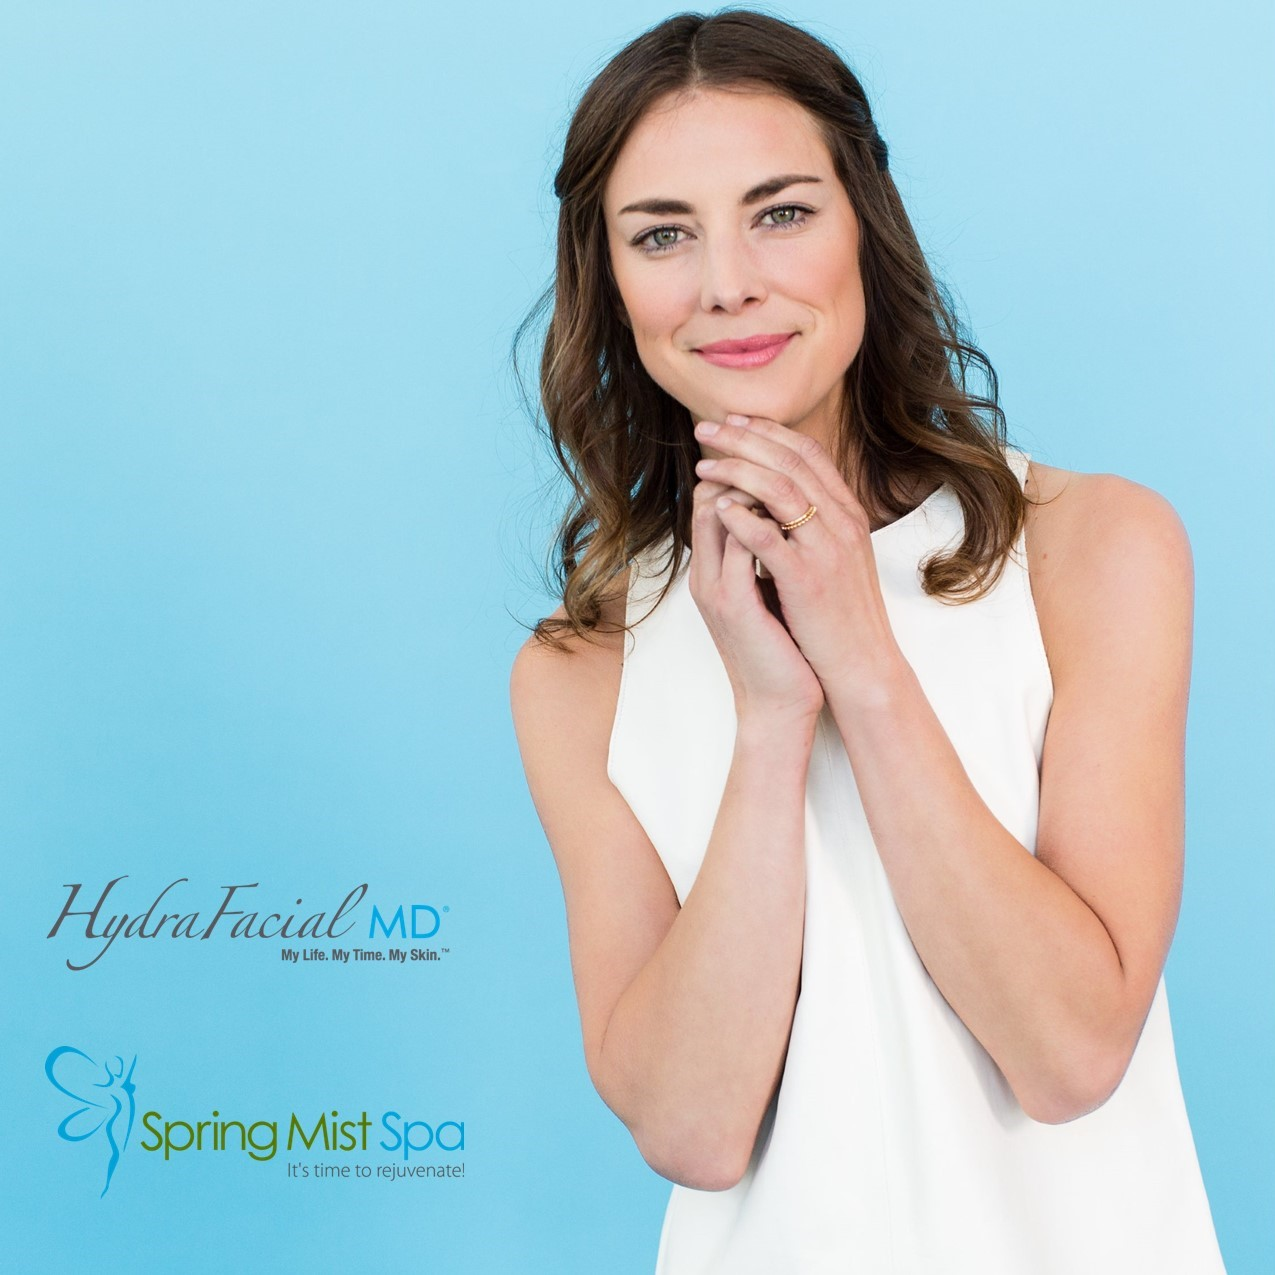 Spring Mist Spa Milton - Hydrafacial Sale - Special Prices